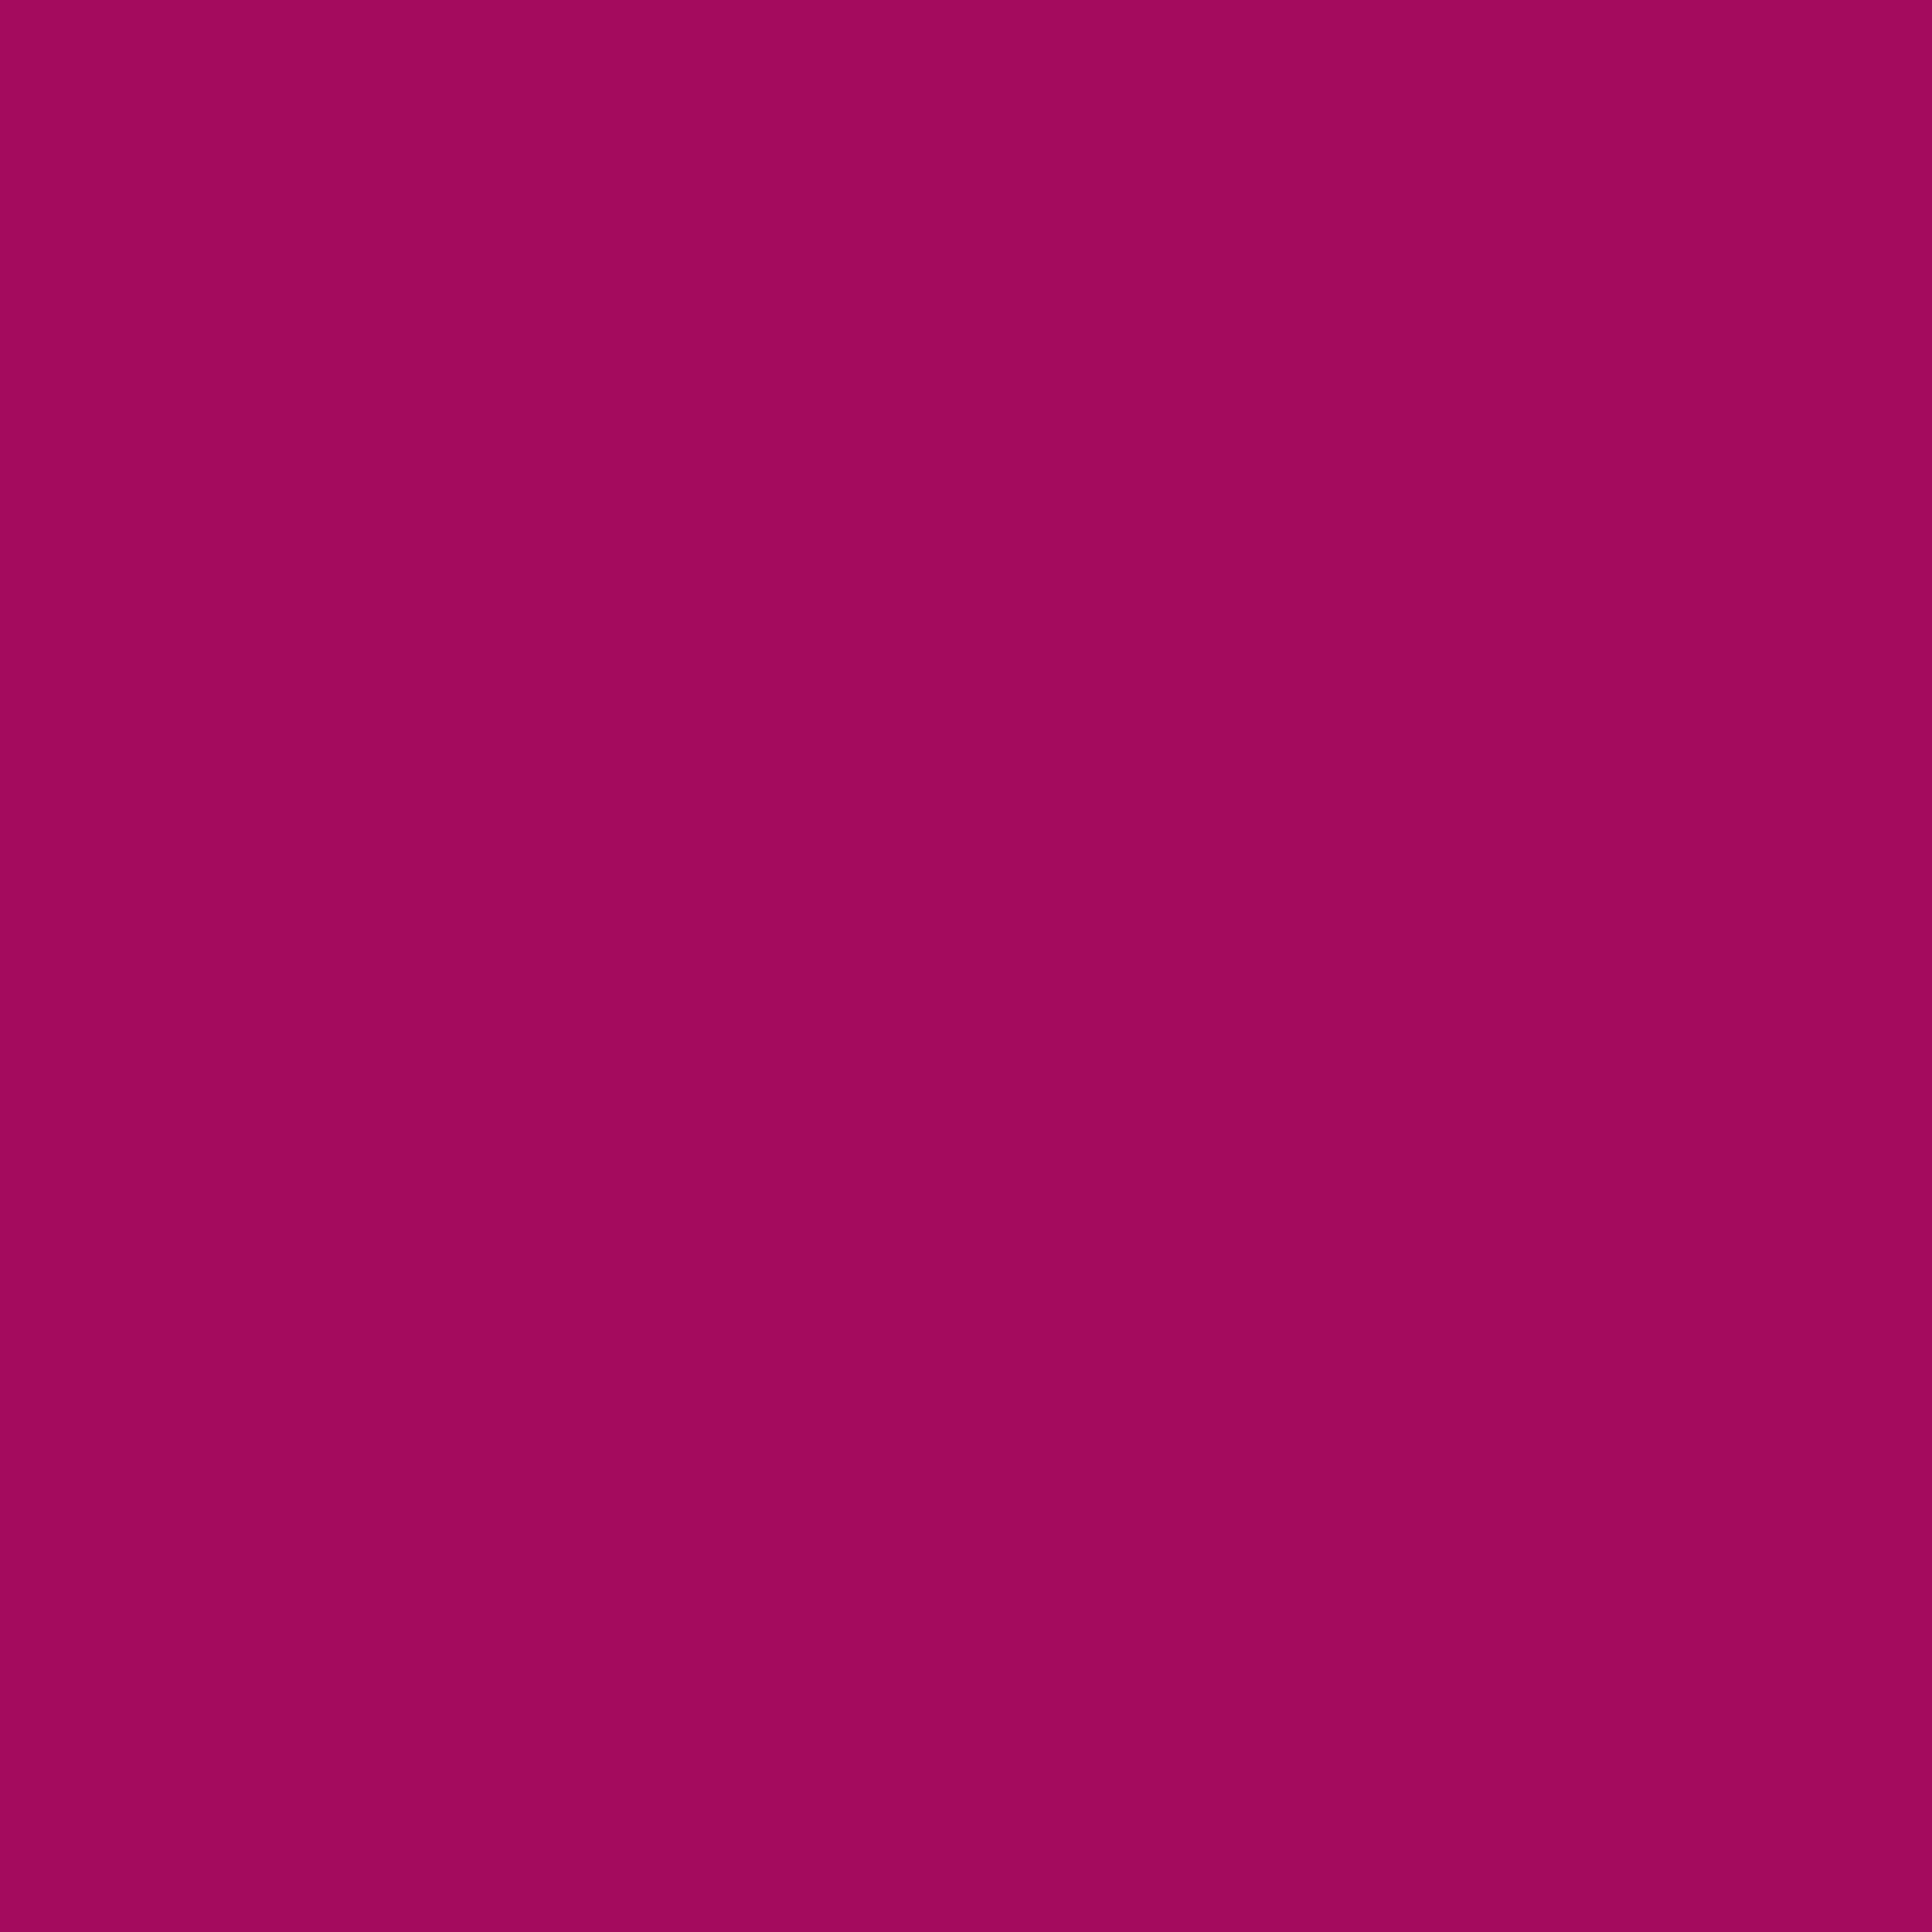 3600x3600 Jazzberry Jam Solid Color Background